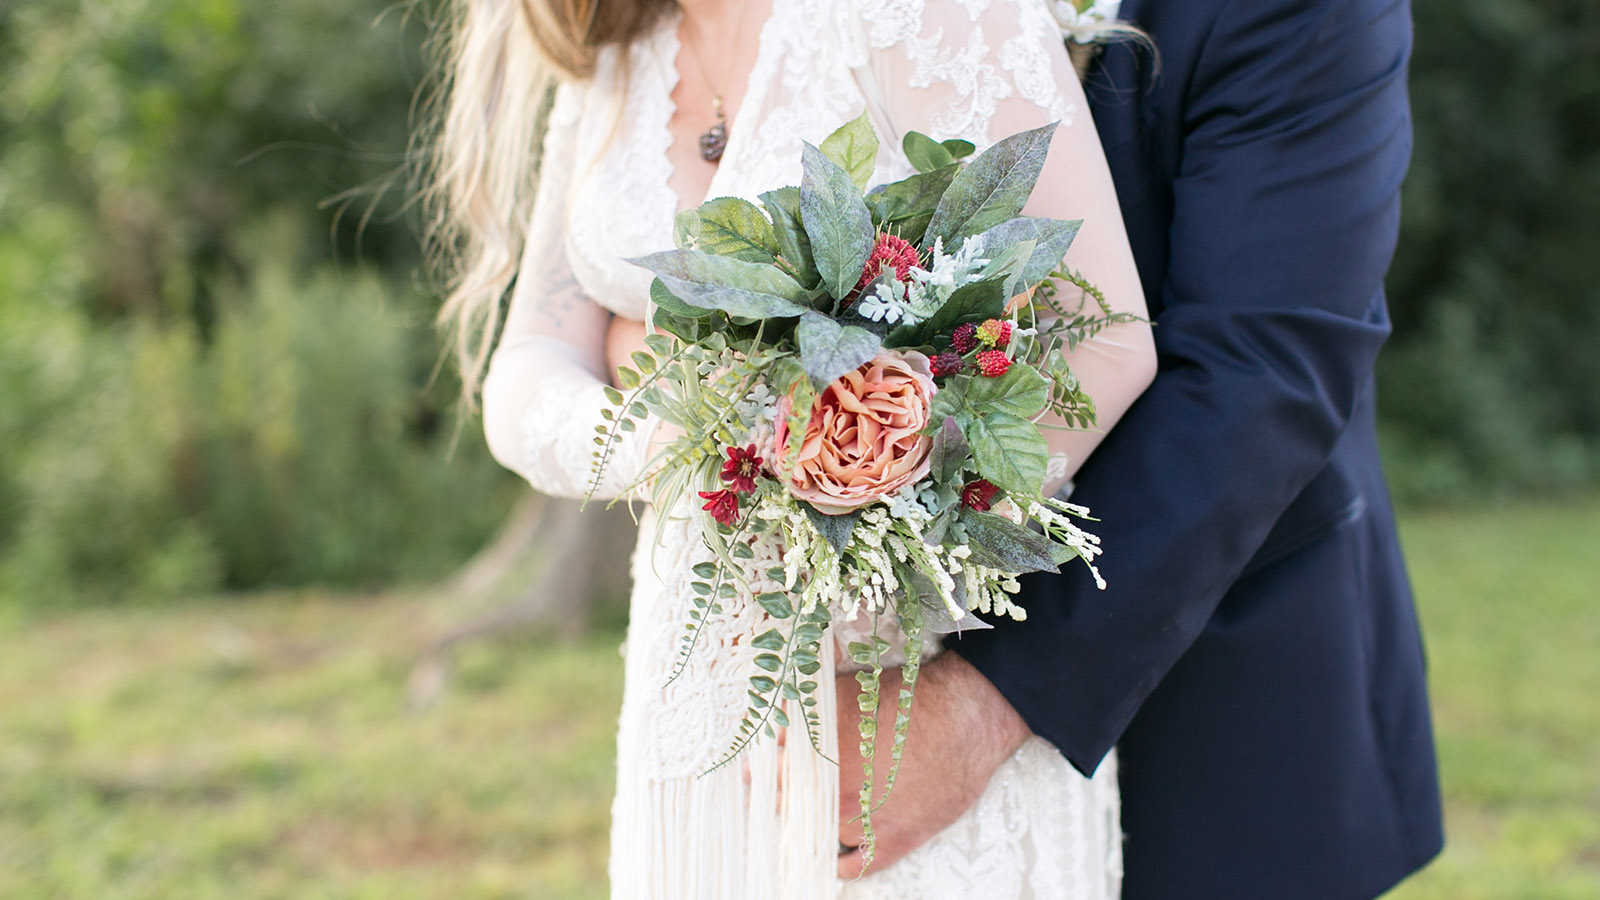 bohemian_bridal_bouquet_wedding_dress_boho_wedding_the_tar_roof_virginia-jessica_ryan_photography_jessica_ryan_photographer